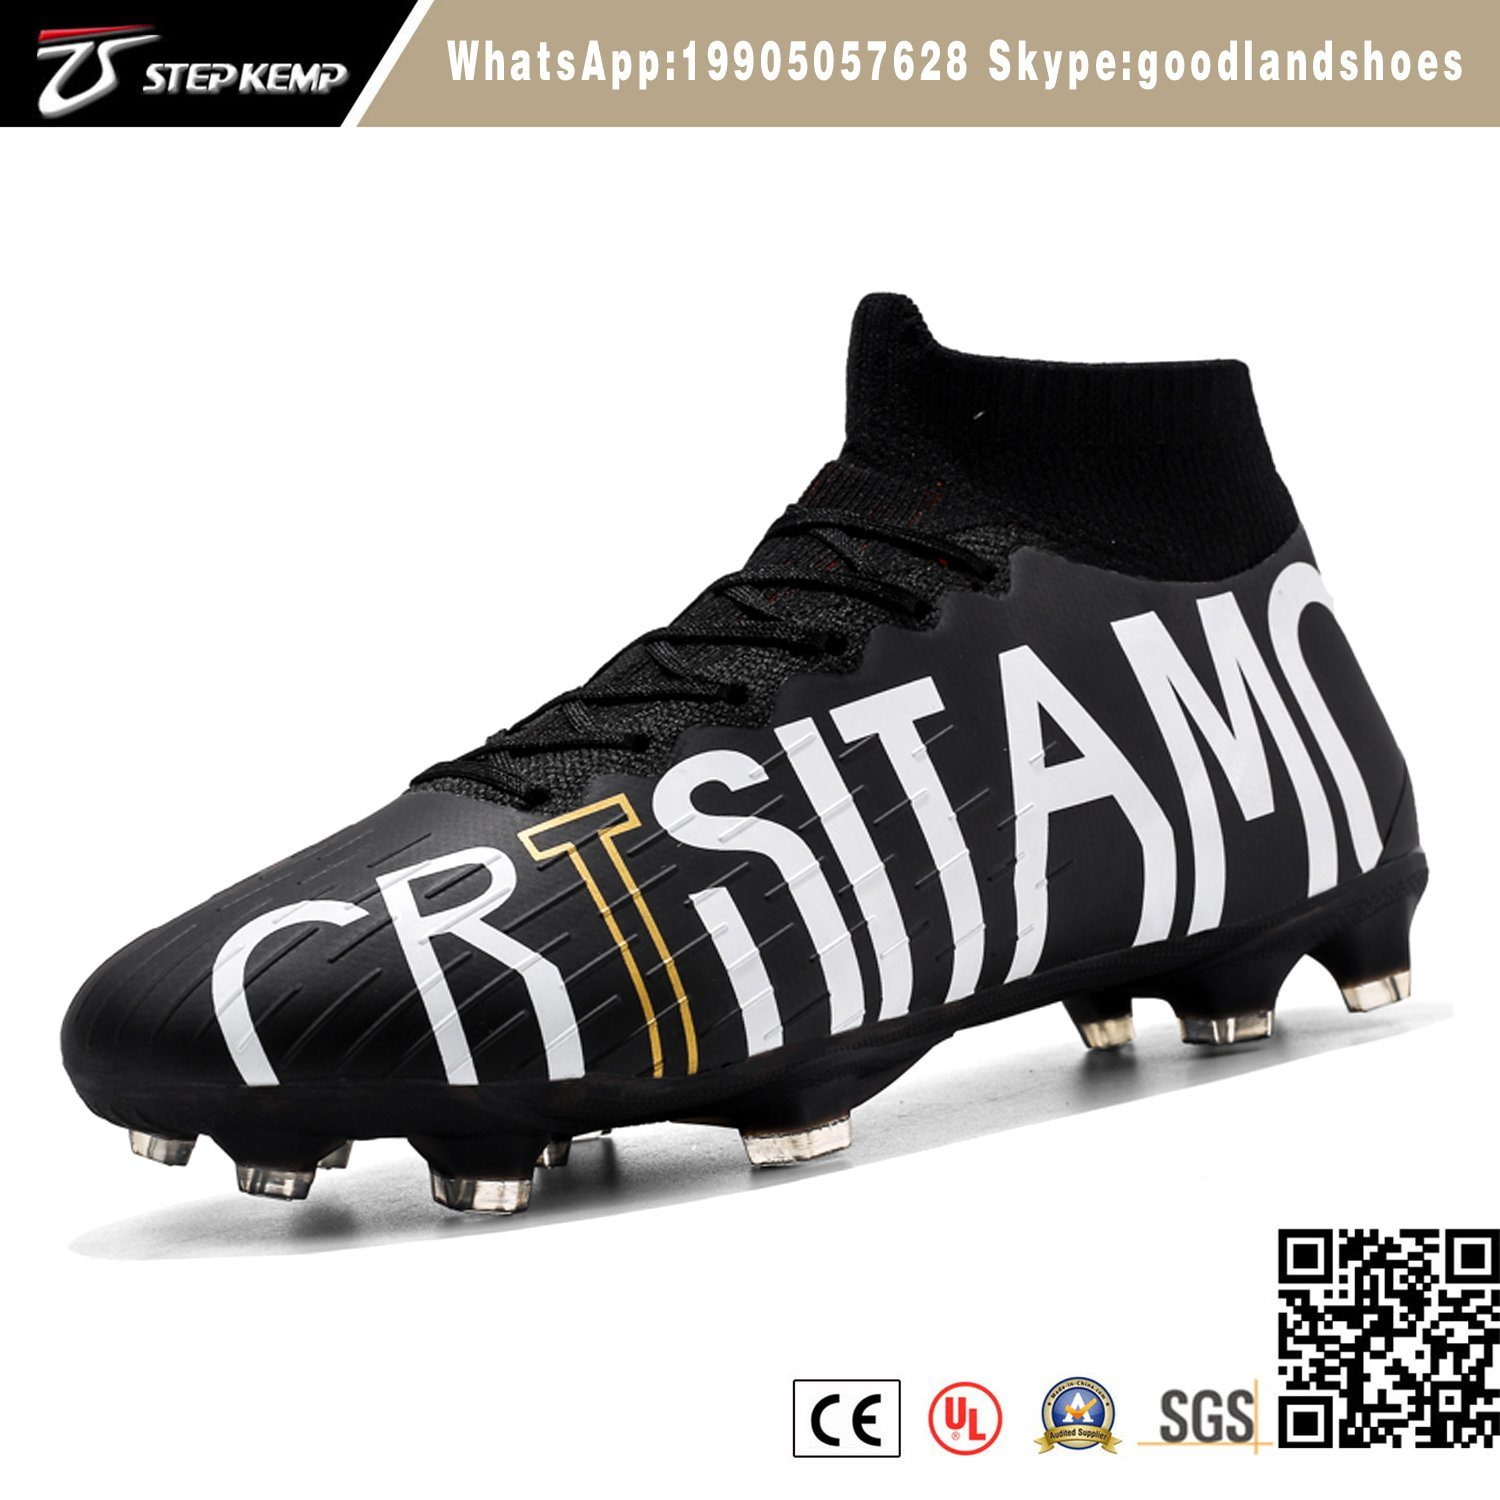 2019 New Design Custom Soccer Shoes